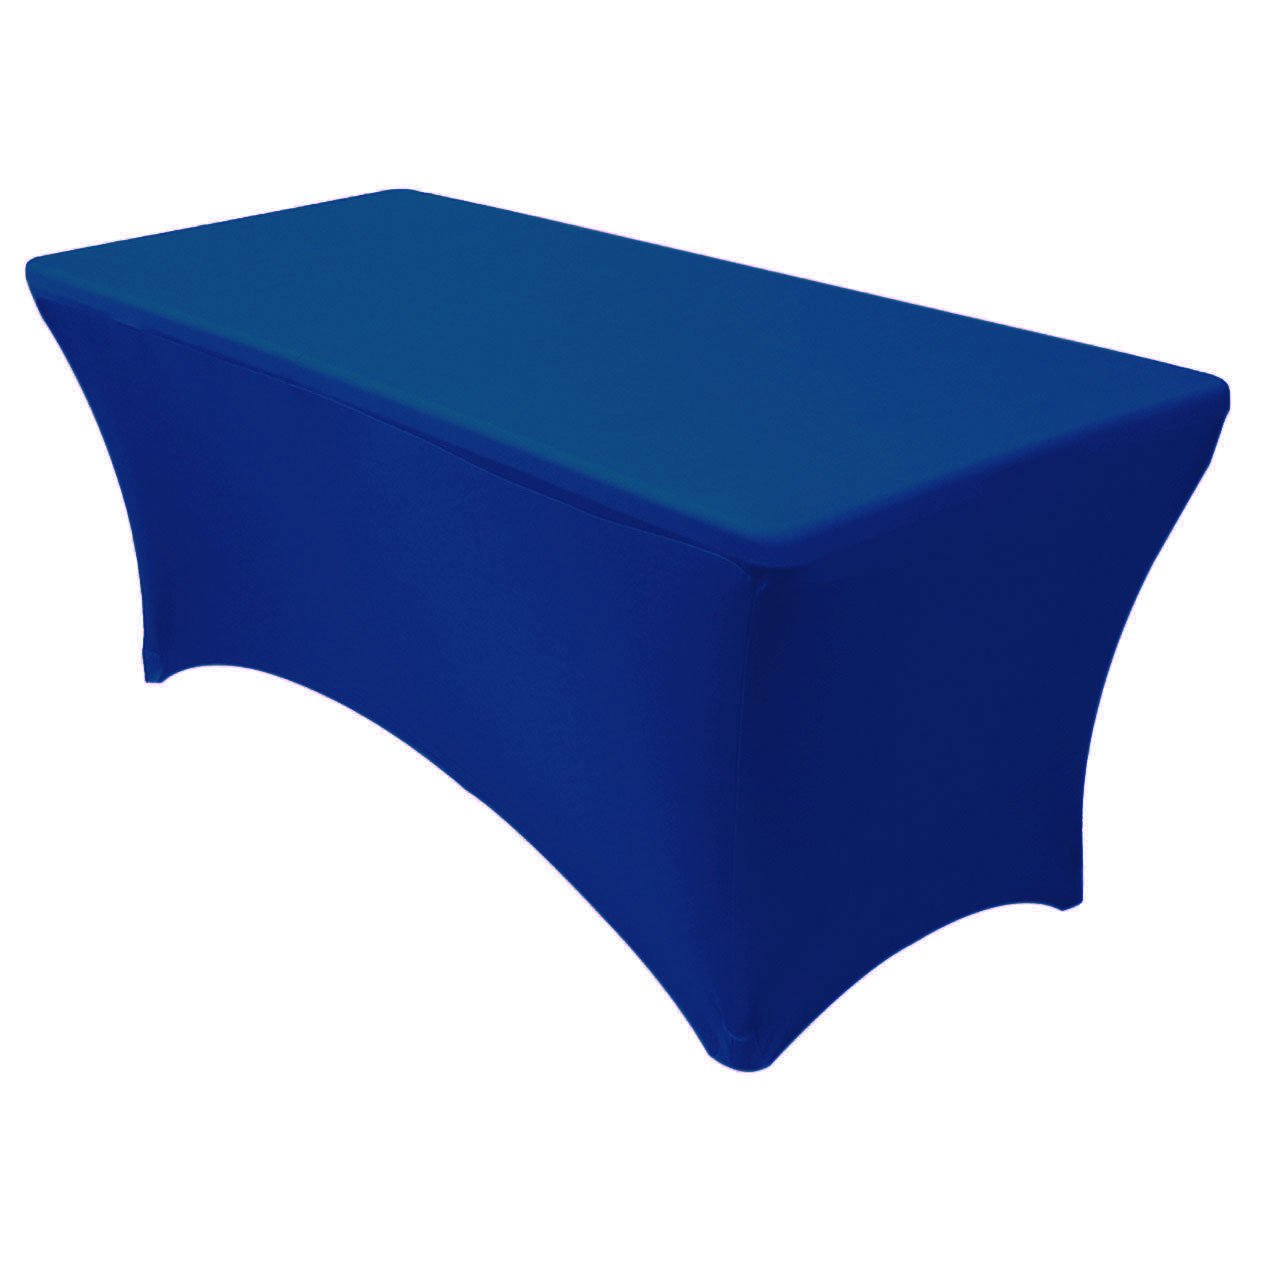 6' ft Spandex Fitted Stretch Tablecloth Rectangular Table Cover Wedding Banquet Party by GW Home (Royal Blue, 6' ft)